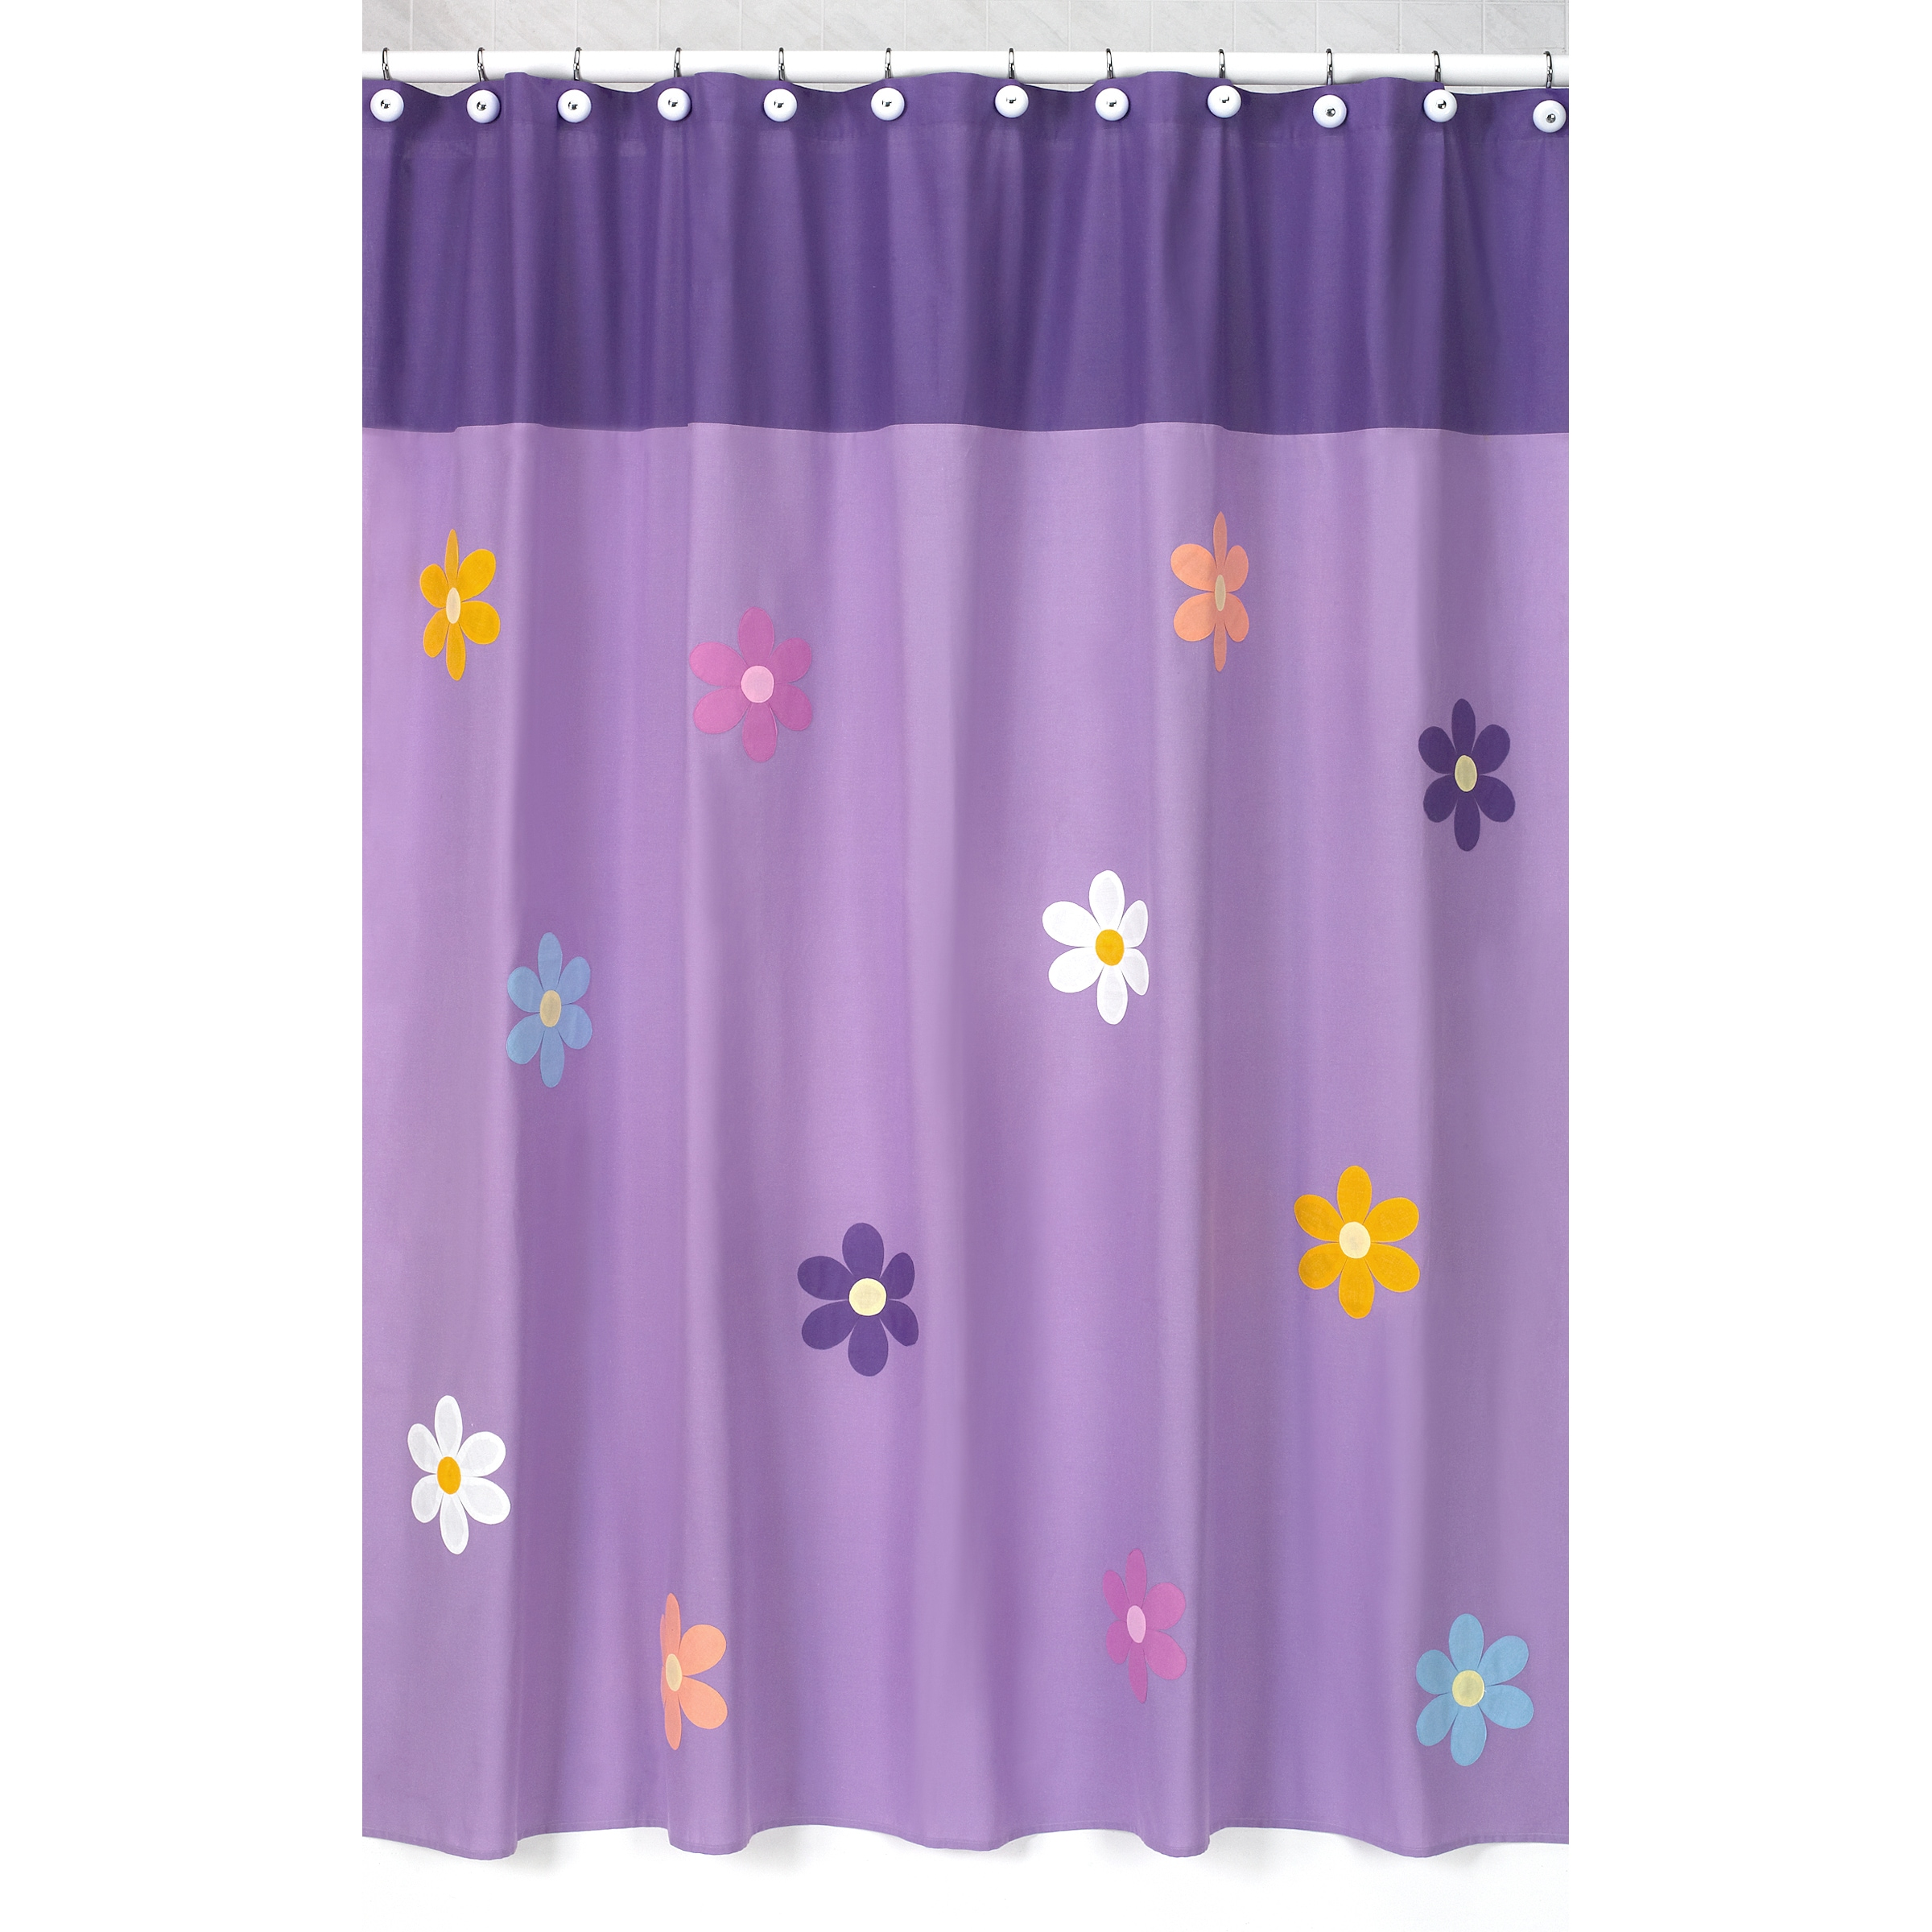 Sweet Jojo Designs Danielle's Daisies Kids Shower Curtain at Sears.com